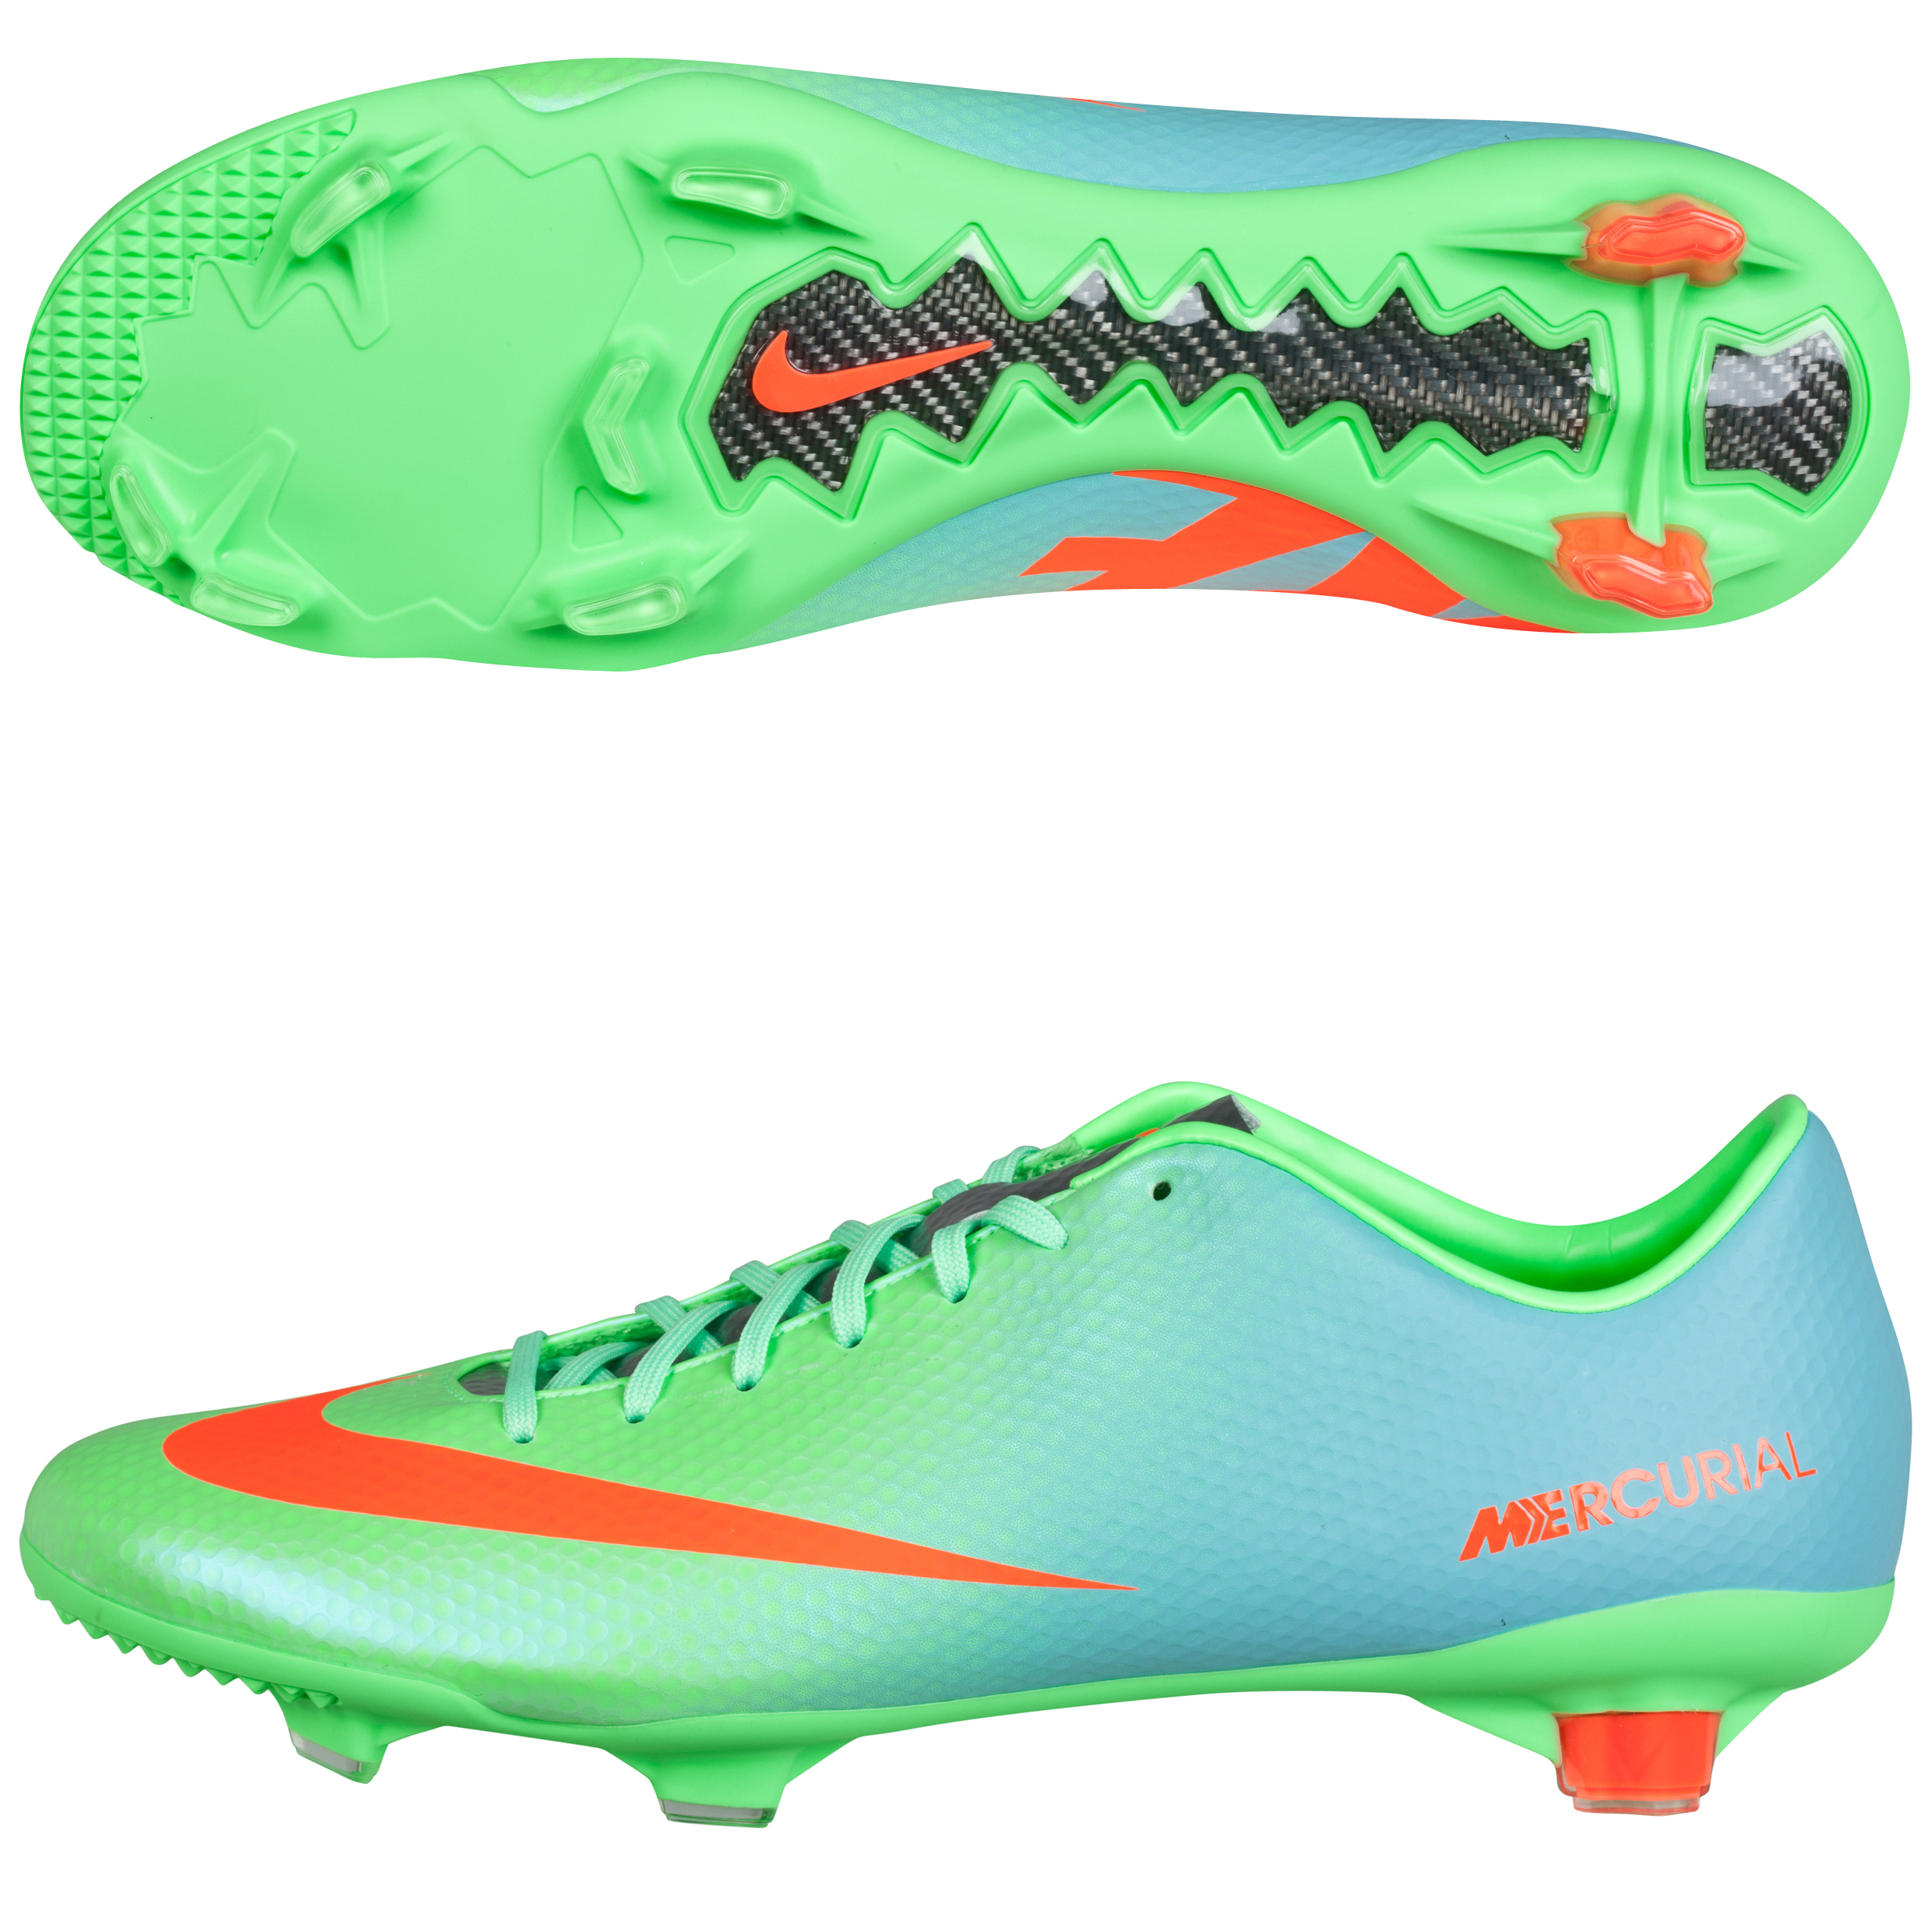 Nike Mercurial Veloce Firm Ground Football Boots Green